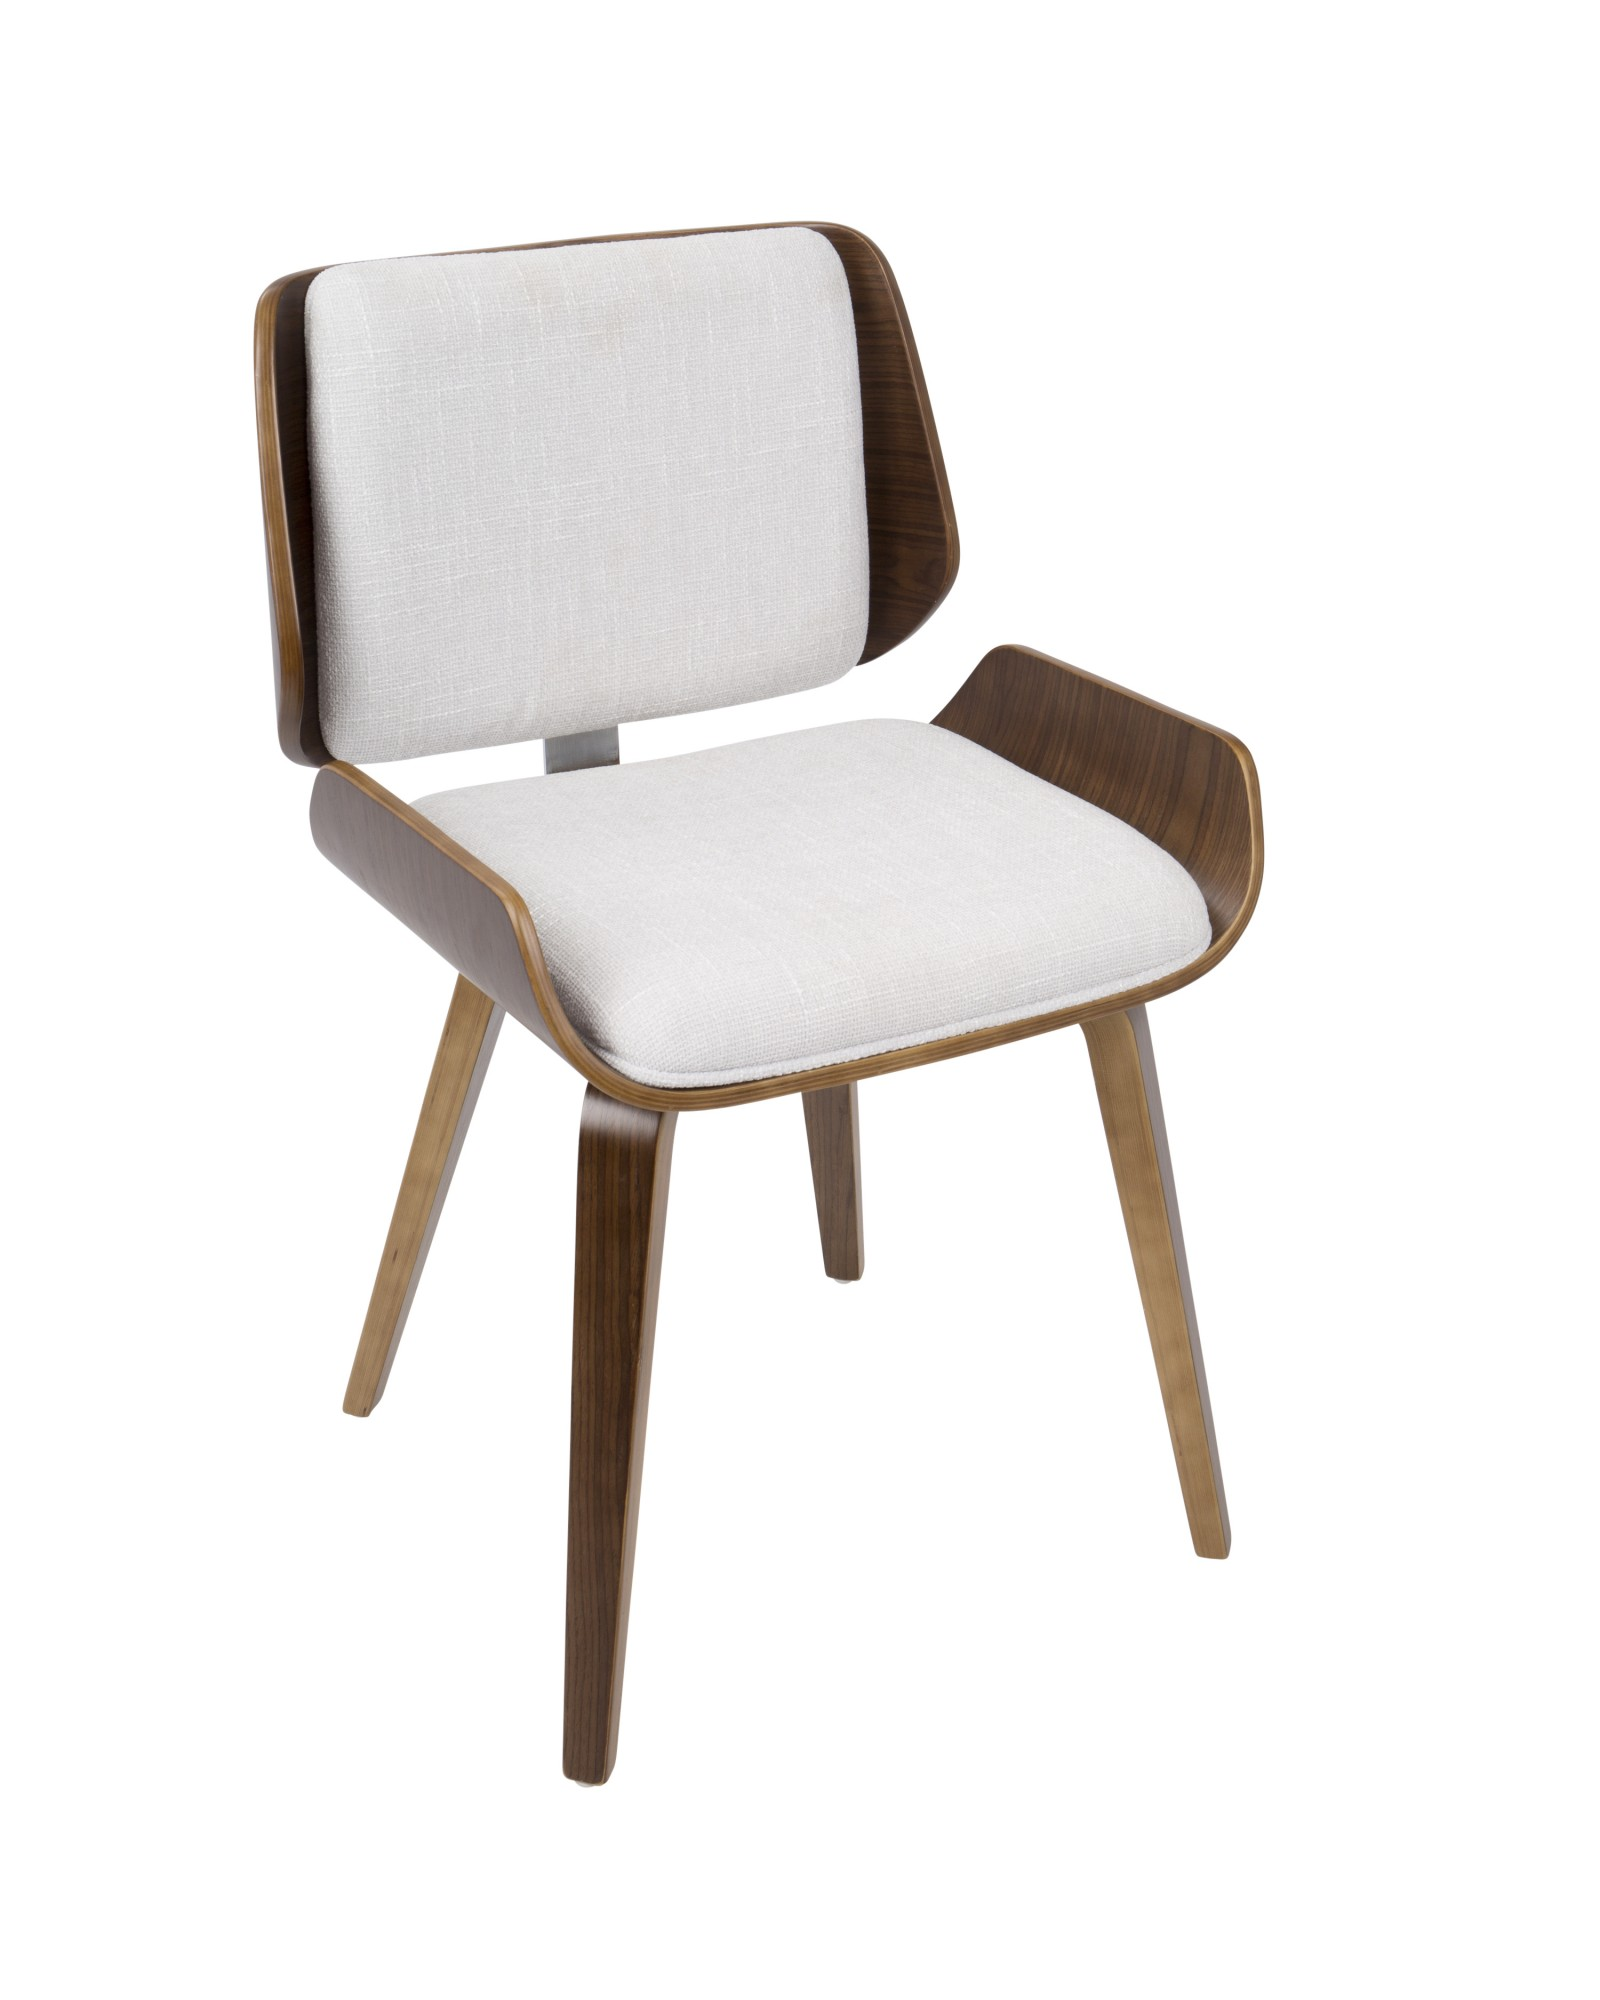 Santi Mid-Century Modern Dining/Accent Chair in Walnut with Light Grey Fabric - Set of 2